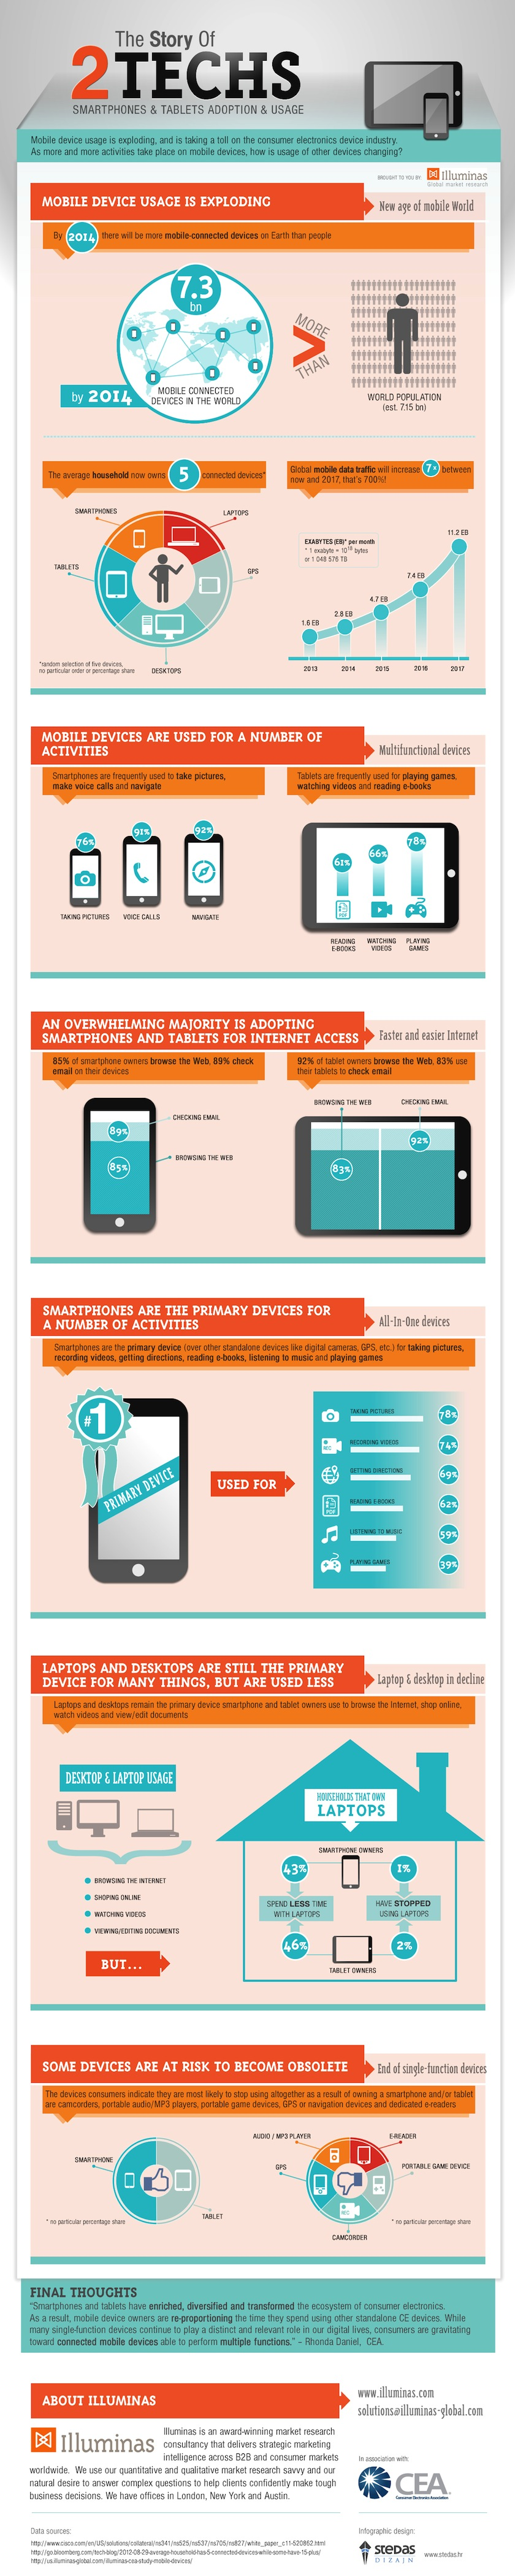 Tablet and smarthone usage is exploding - infographic